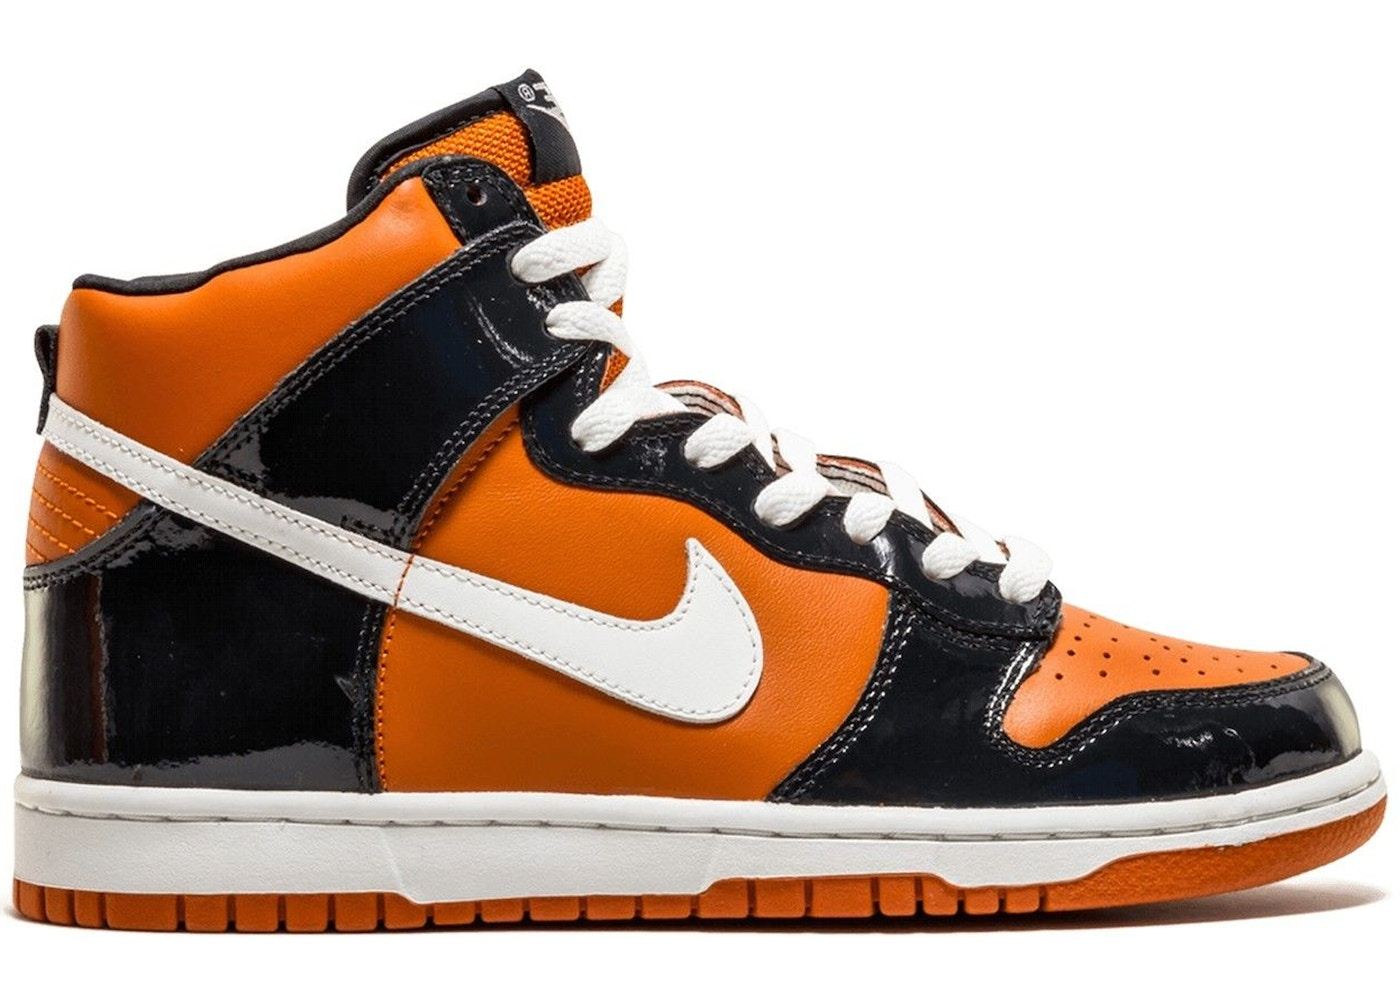 save off df3bb 94f68 Nike Basketball Dunk Shoes - Price Premium